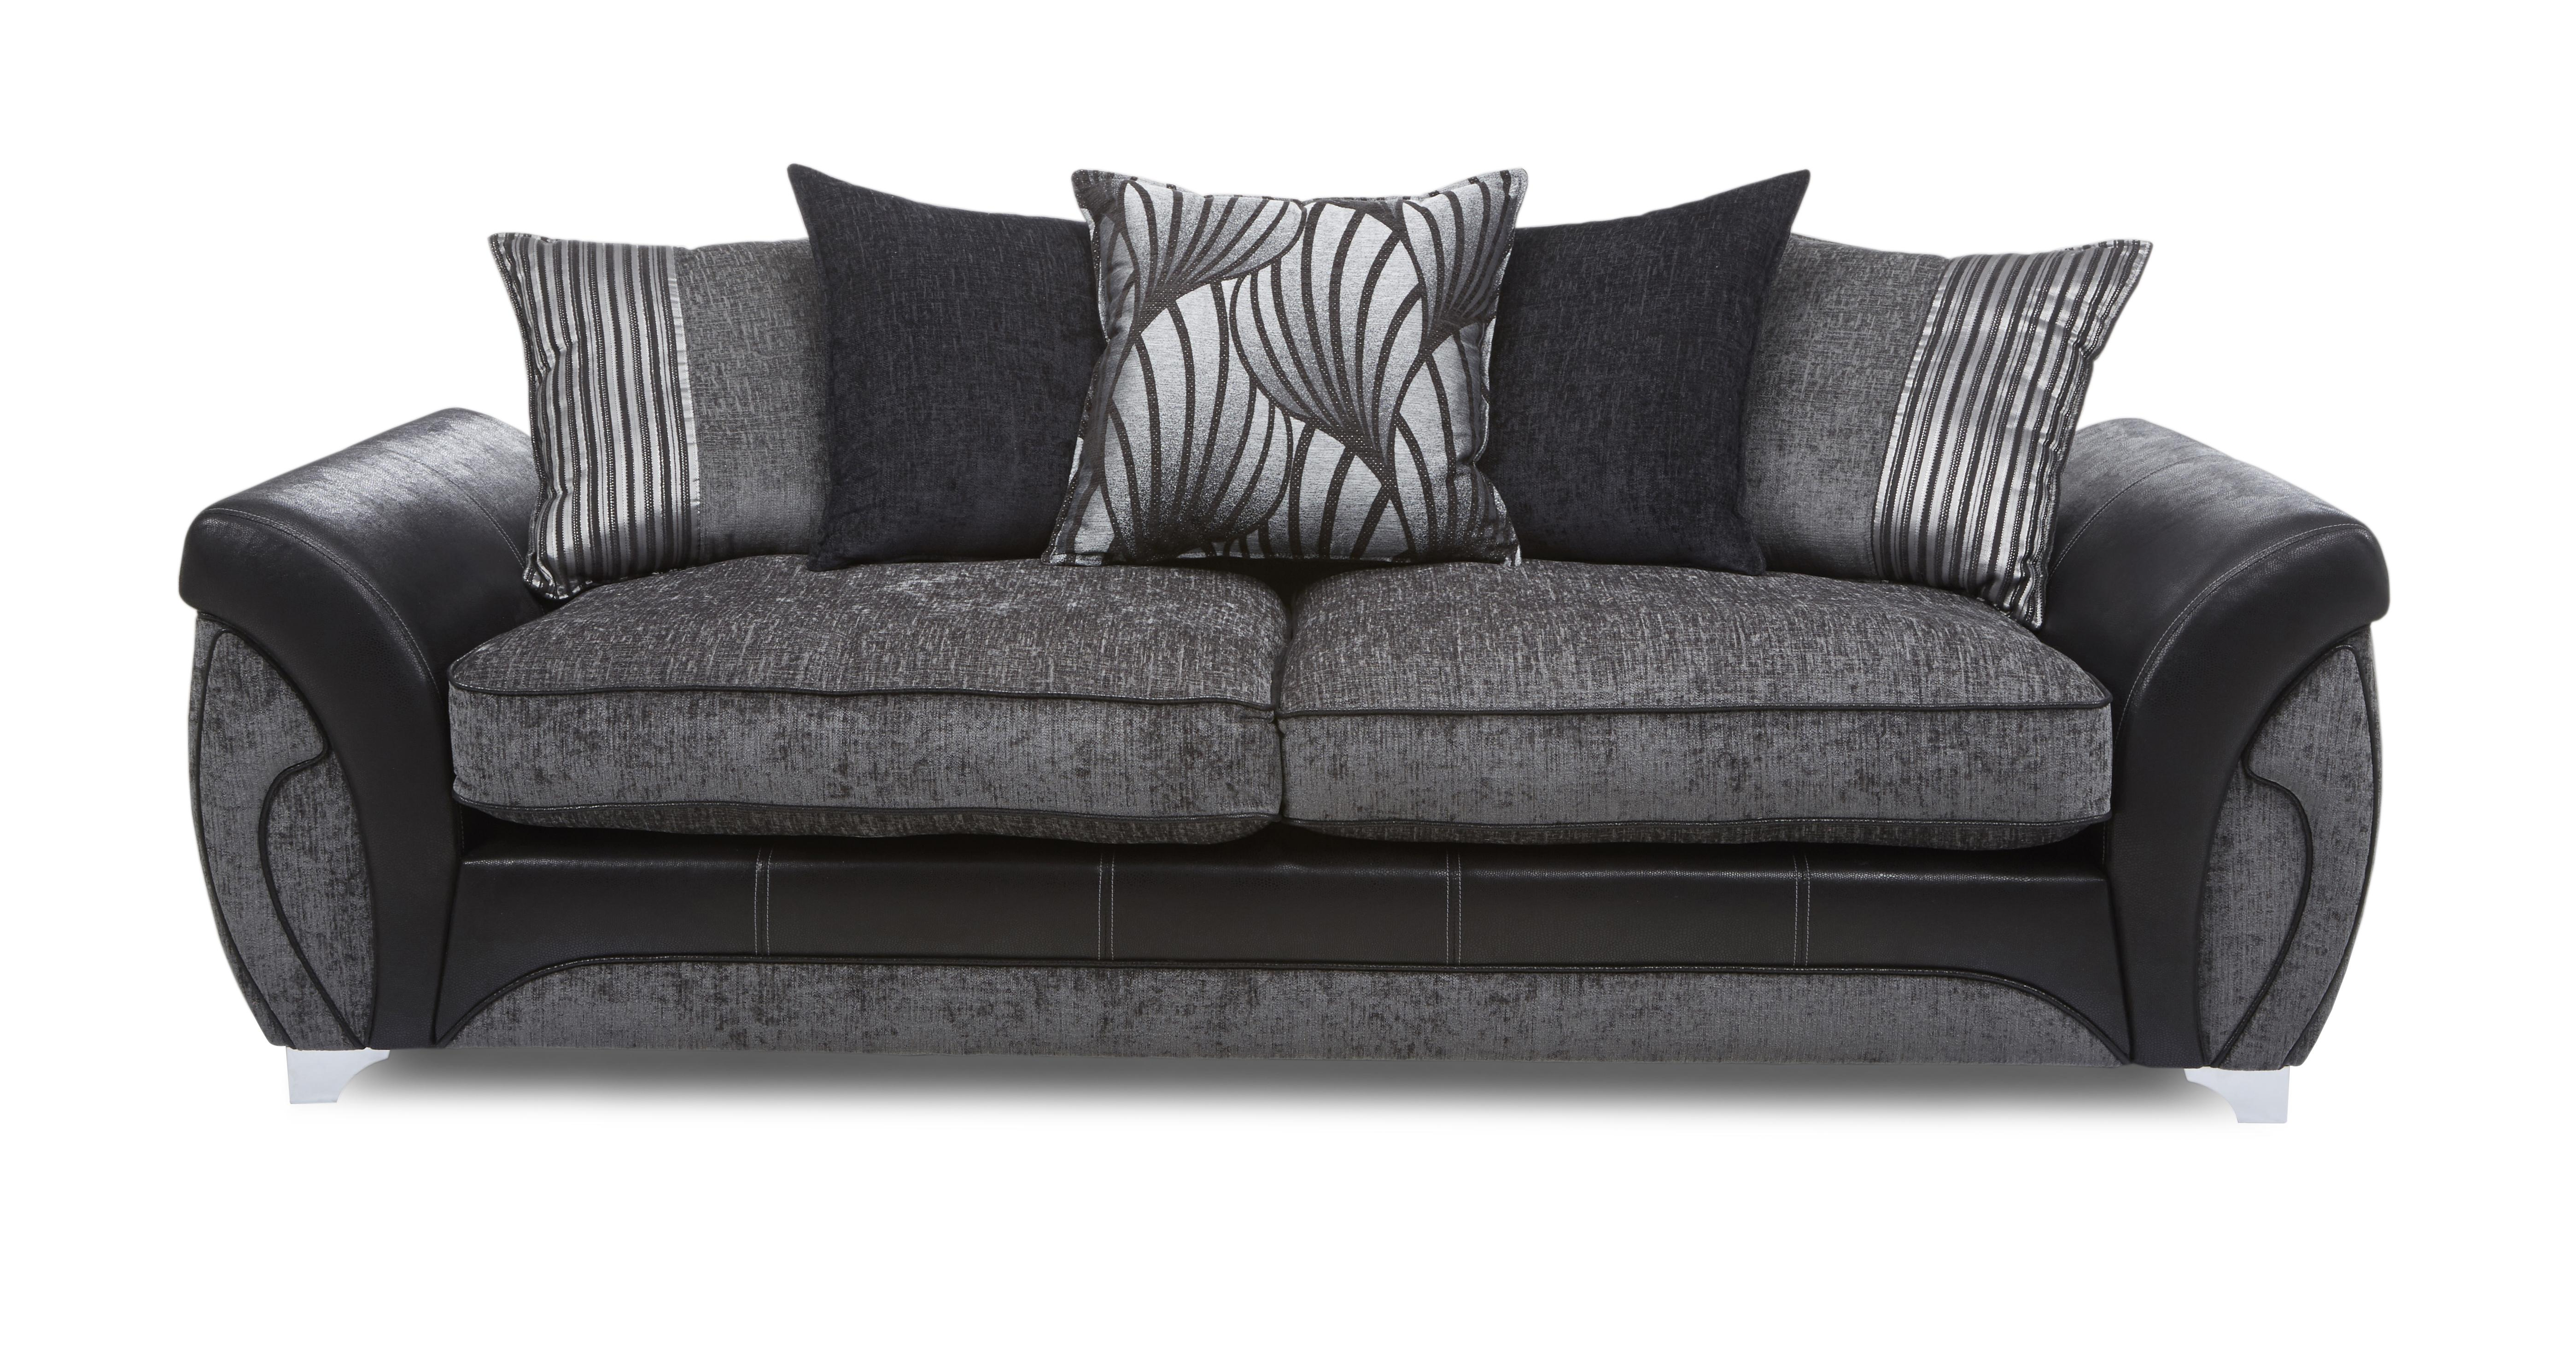 black 3 seater sofa and cuddle chair bernhart 4 leather dfs gradschoolfairs